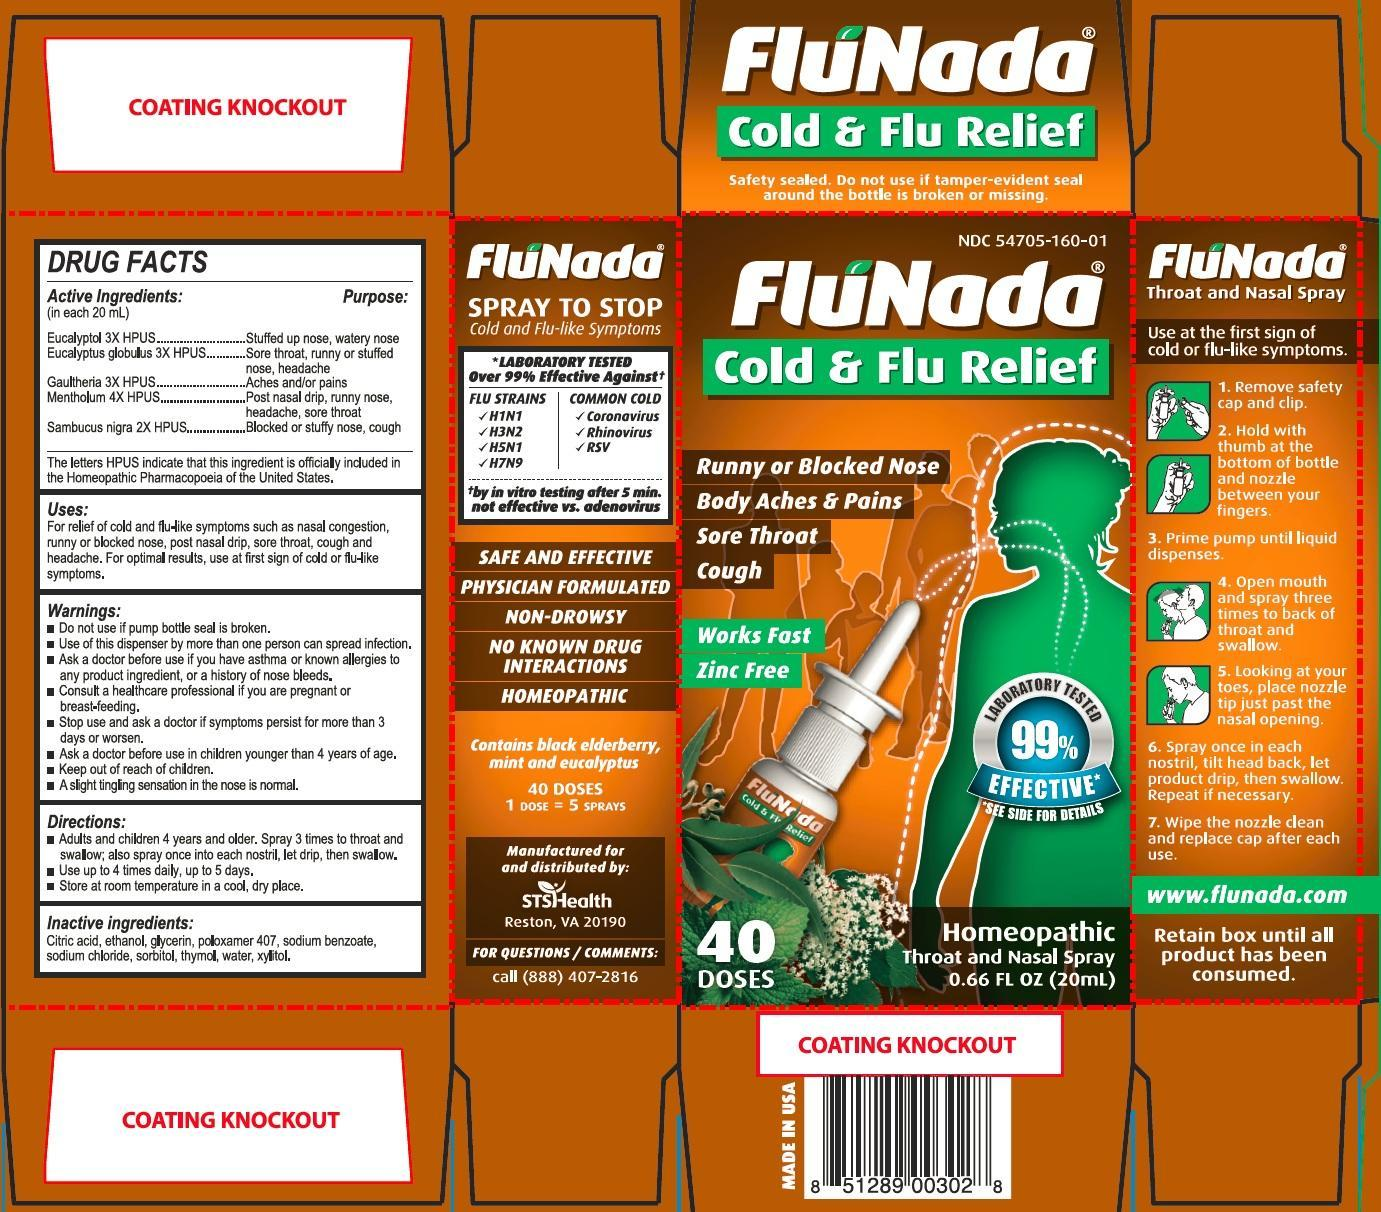 Flunada Cold And Flu Relief (Eucalyptol, Eucalyptus Globulus Whole, Menthol, Sambucus Nigra Whole, Methyl Salicylate) Spray, Metered [Flutrends International Corporation]